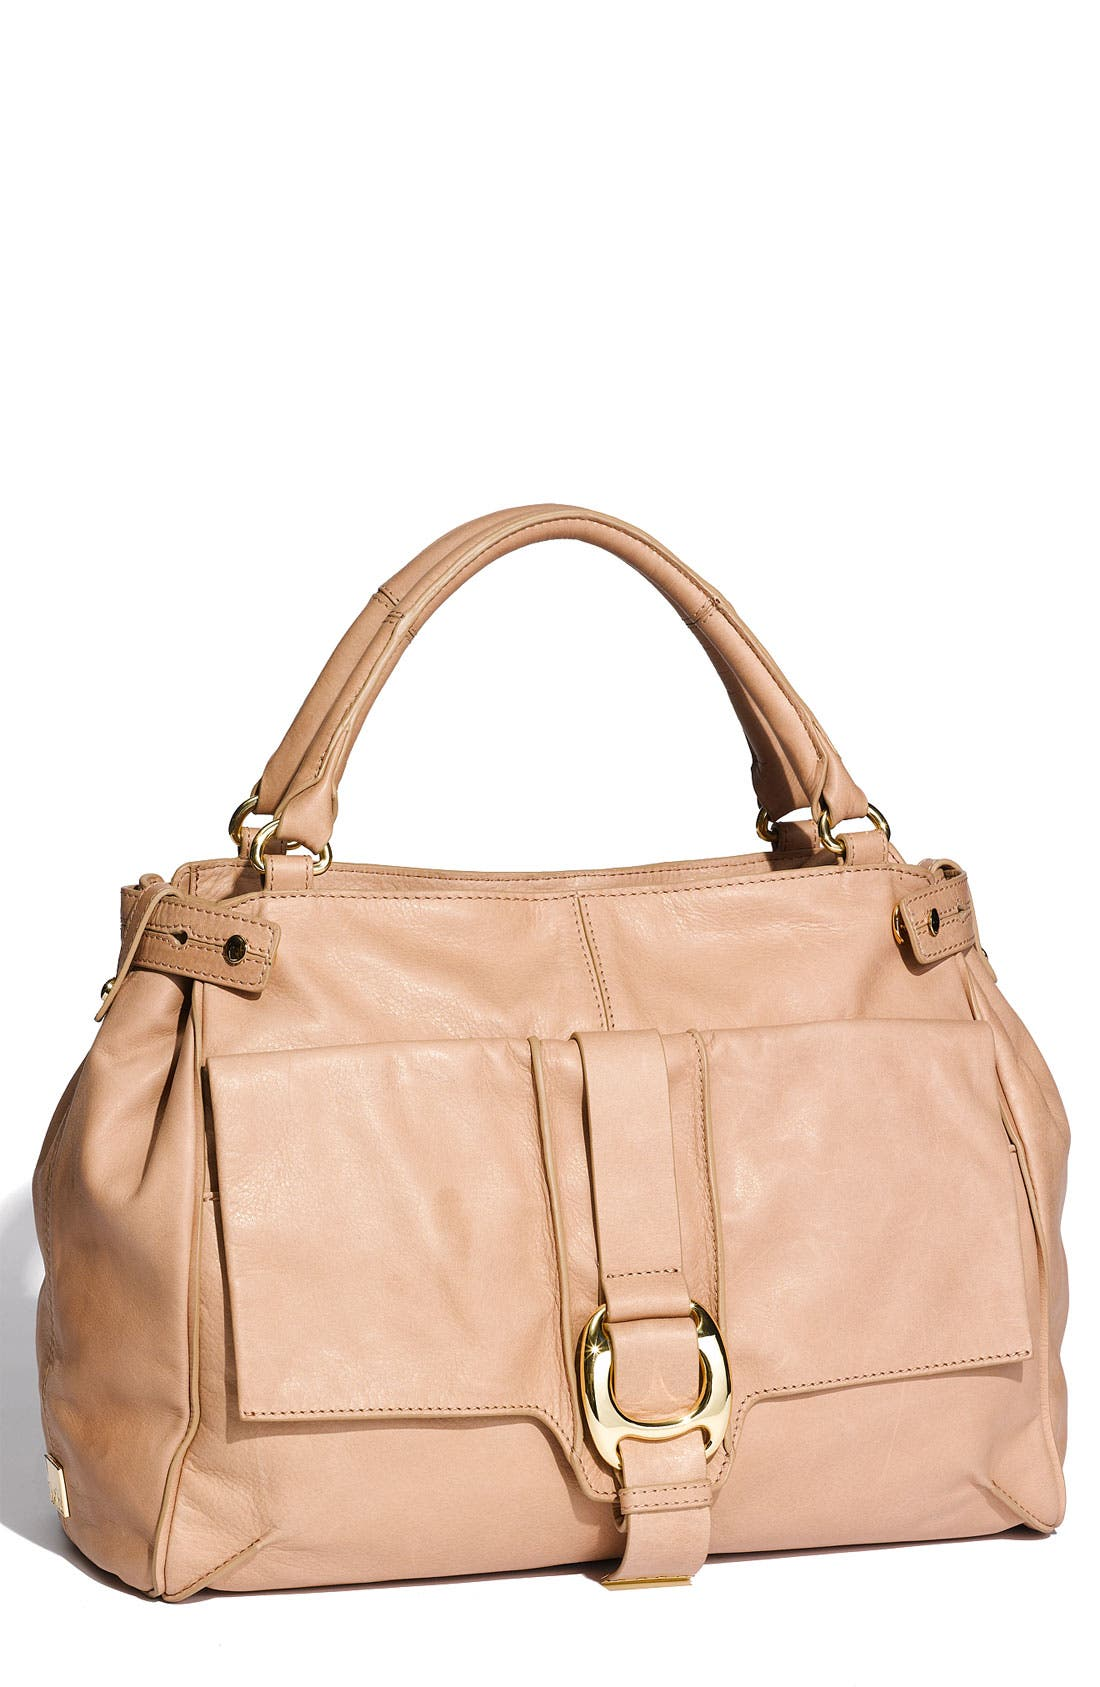 Main Image - Kooba 'Anya' Leather Satchel